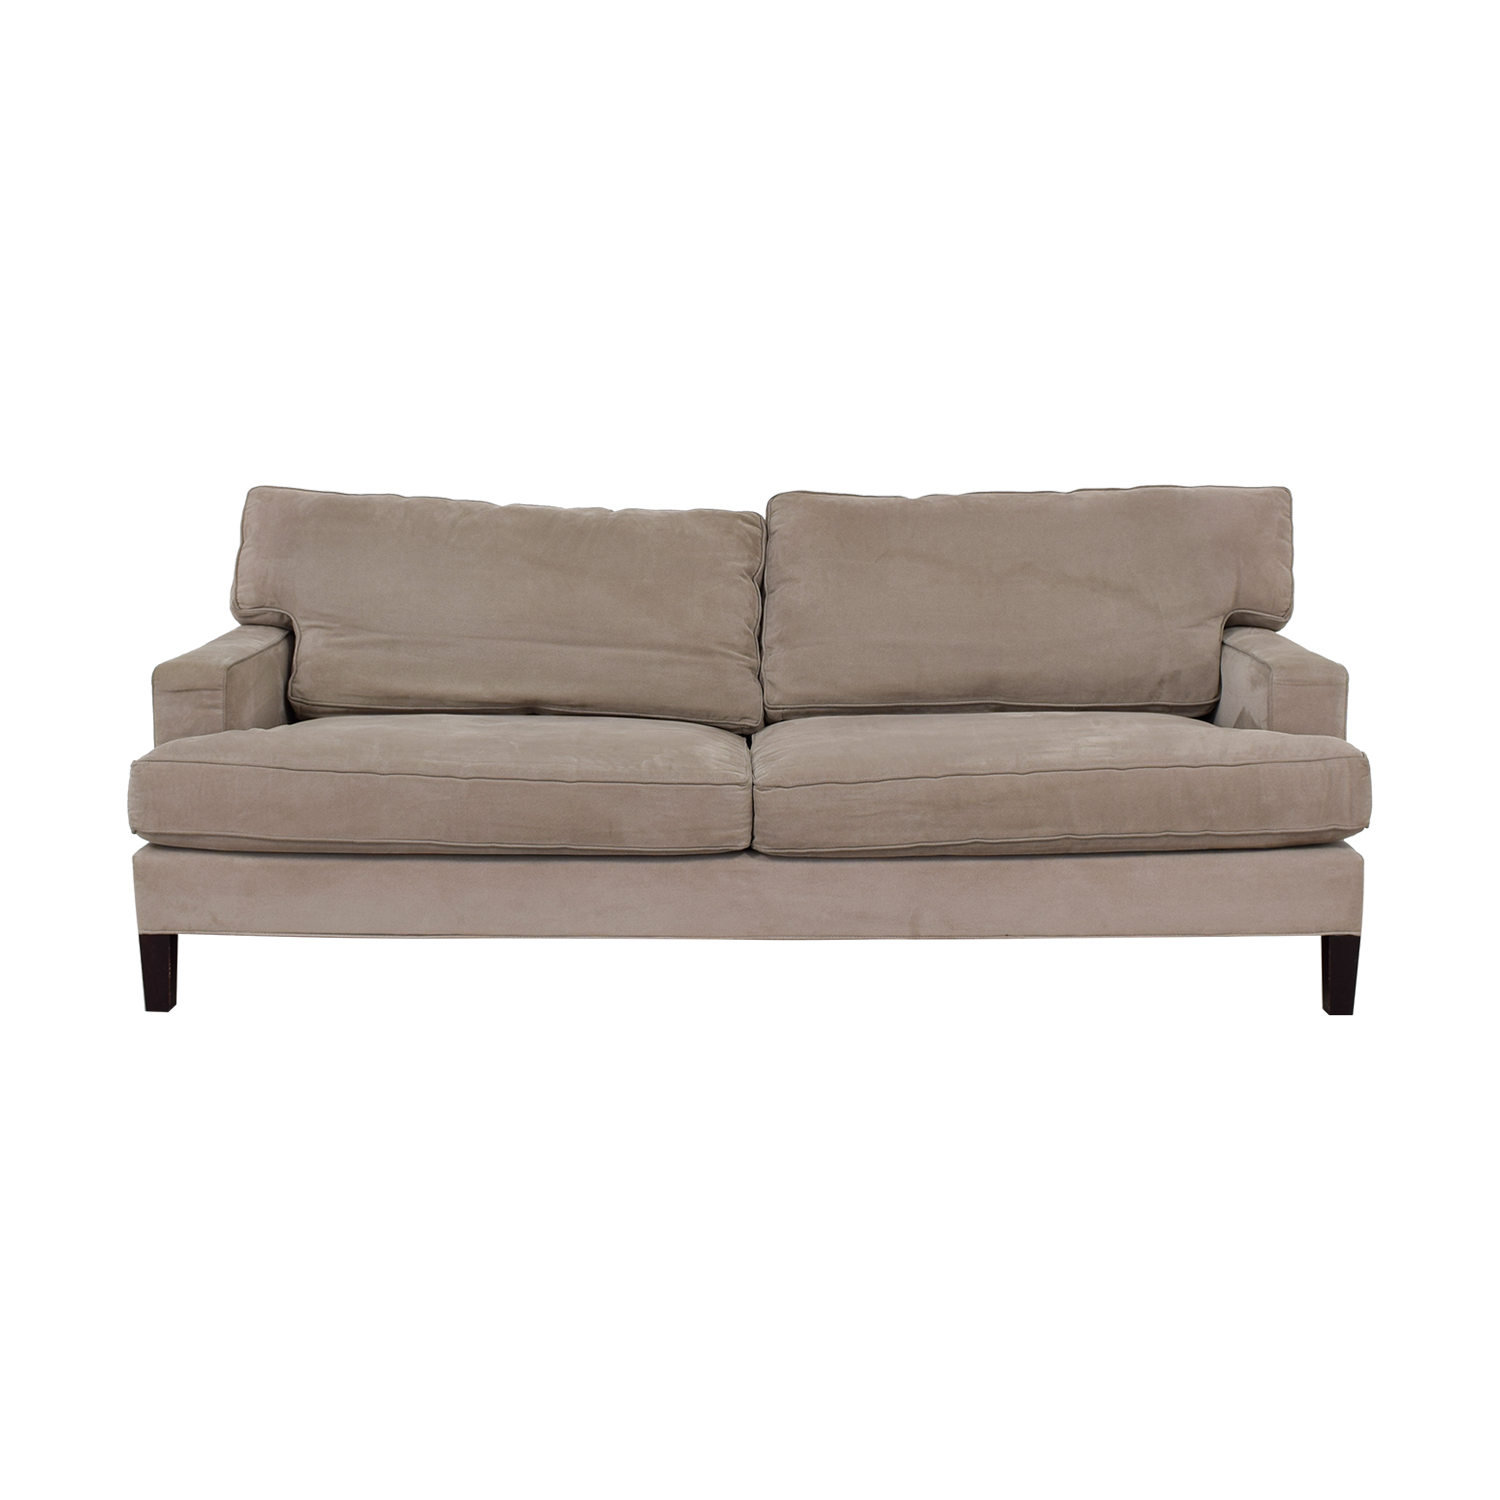 buy Room & Board Room & Board Hawthorne Sofa online